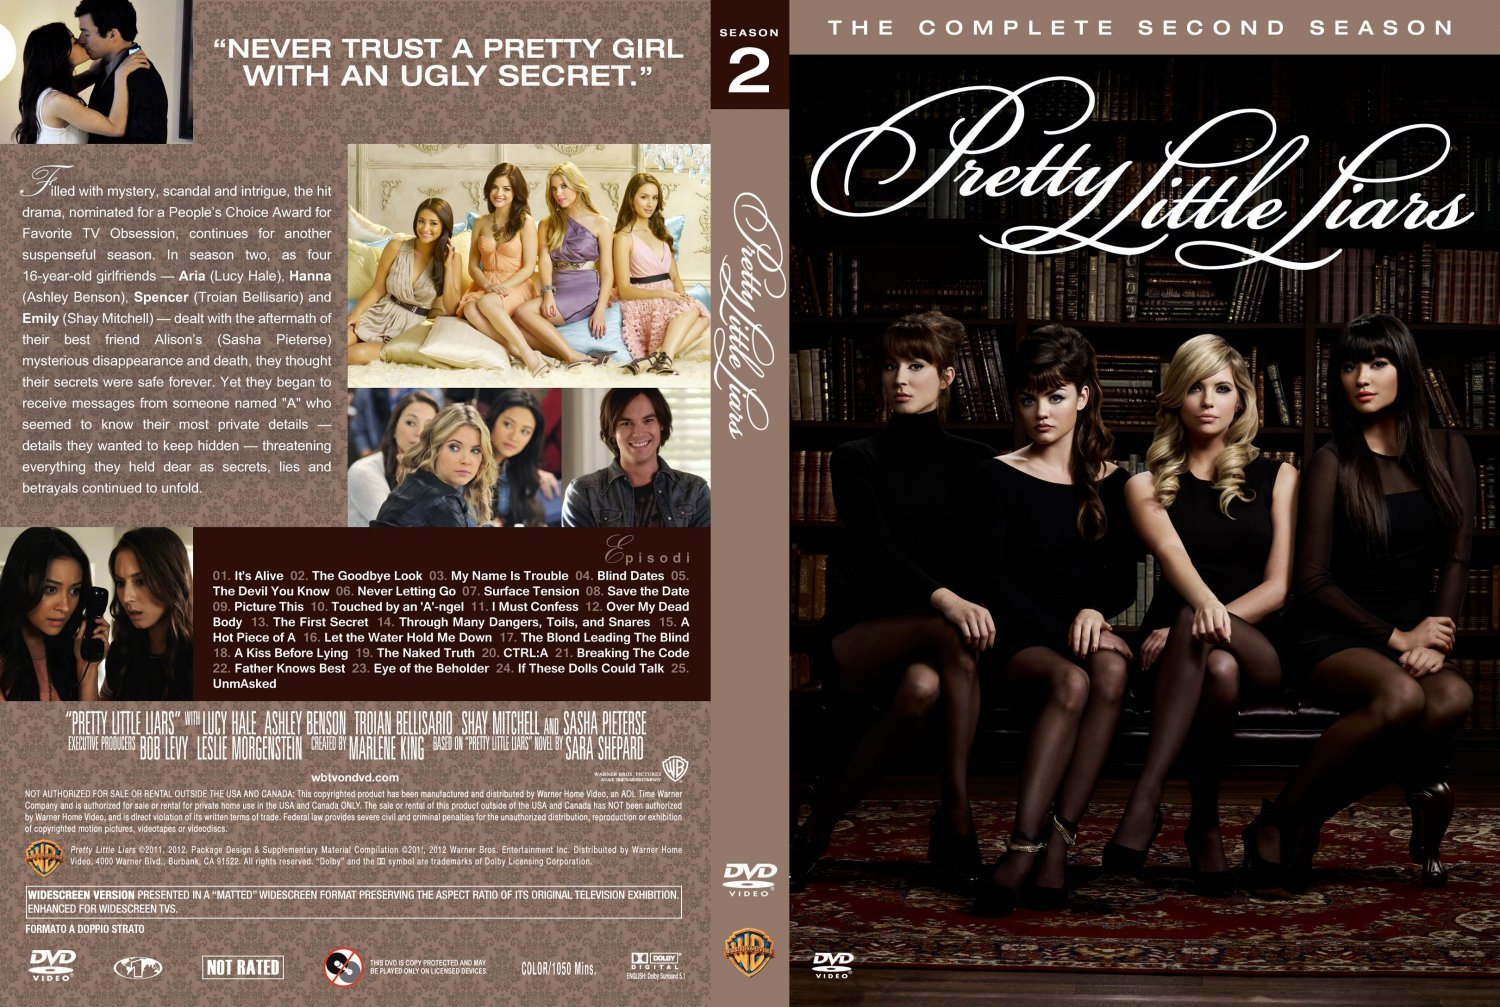 Little liars season 2 pretty little liars season 2 date 05 21 2012